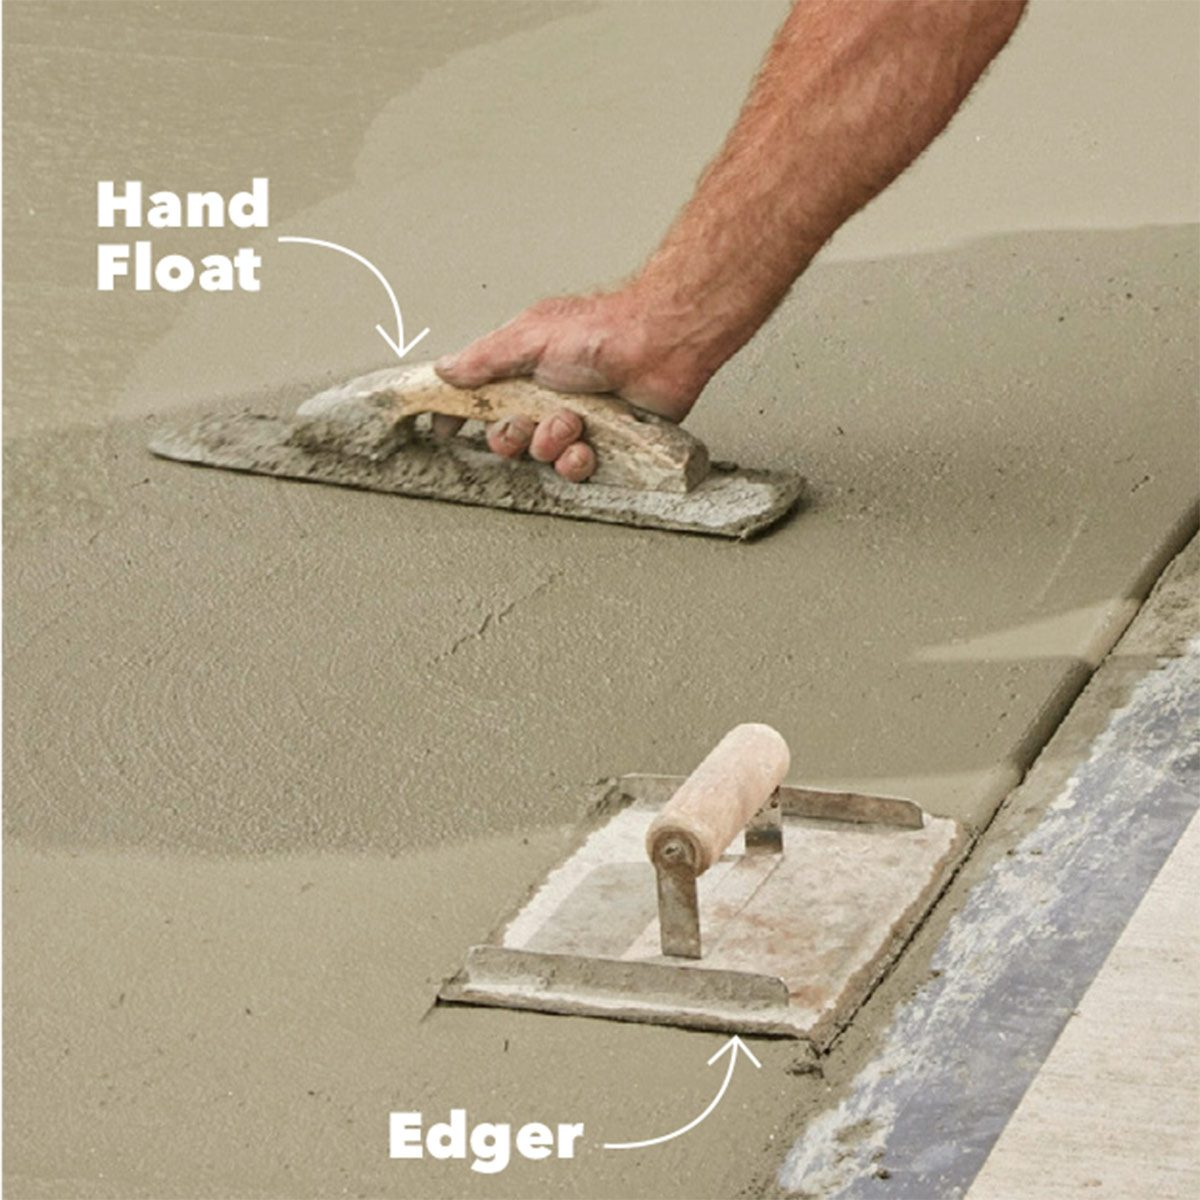 Keep hand float nearby